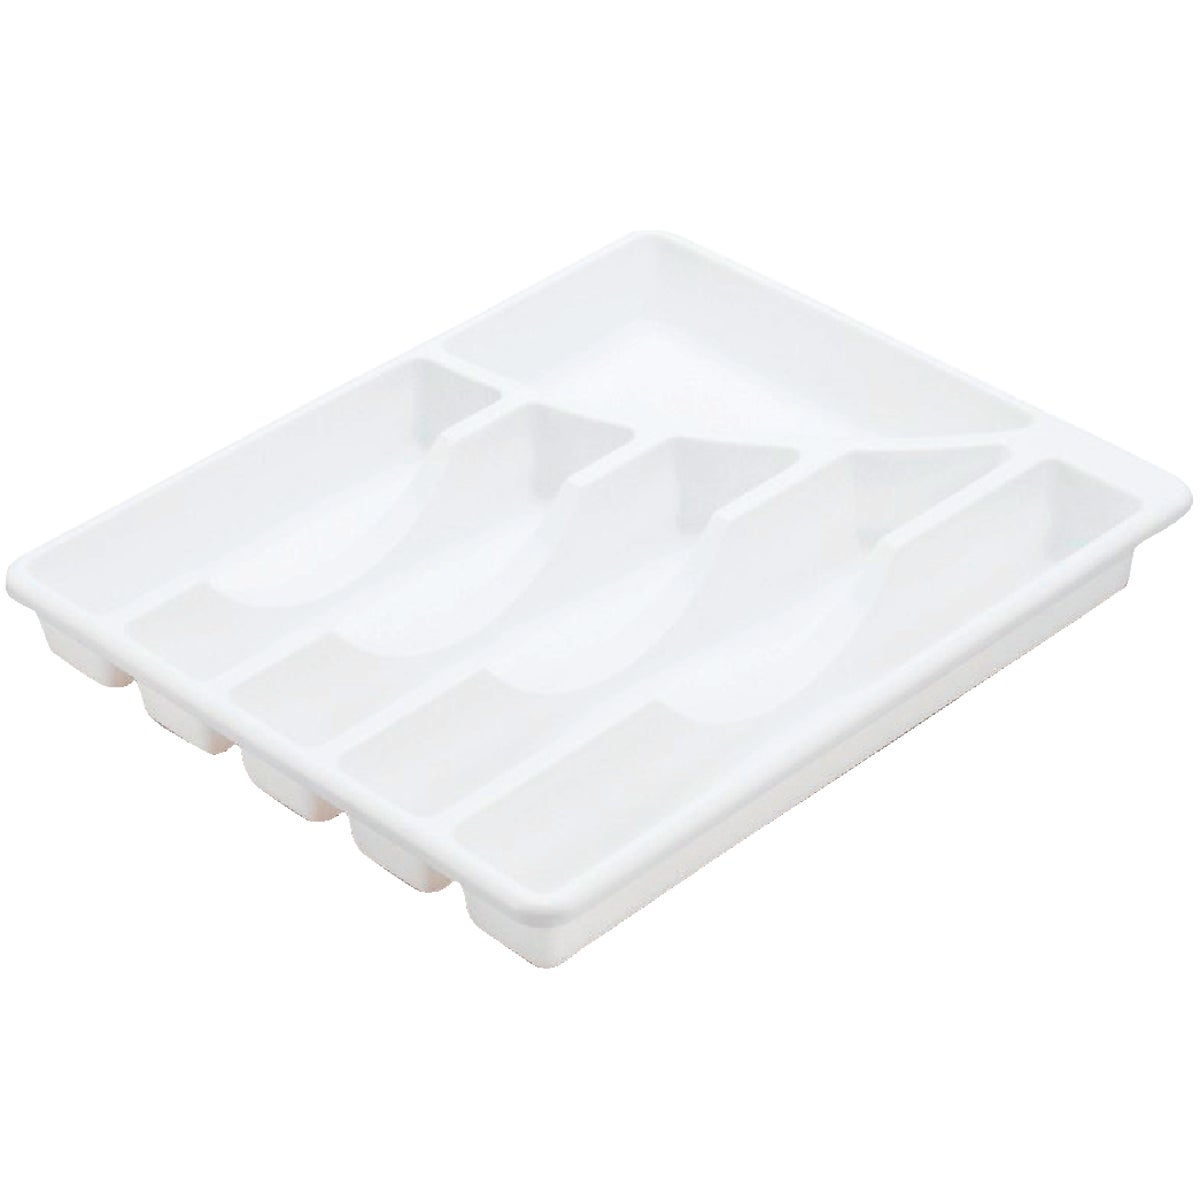 WHITE CUTLERY TRAY - 15758006 by Sterilite Corp